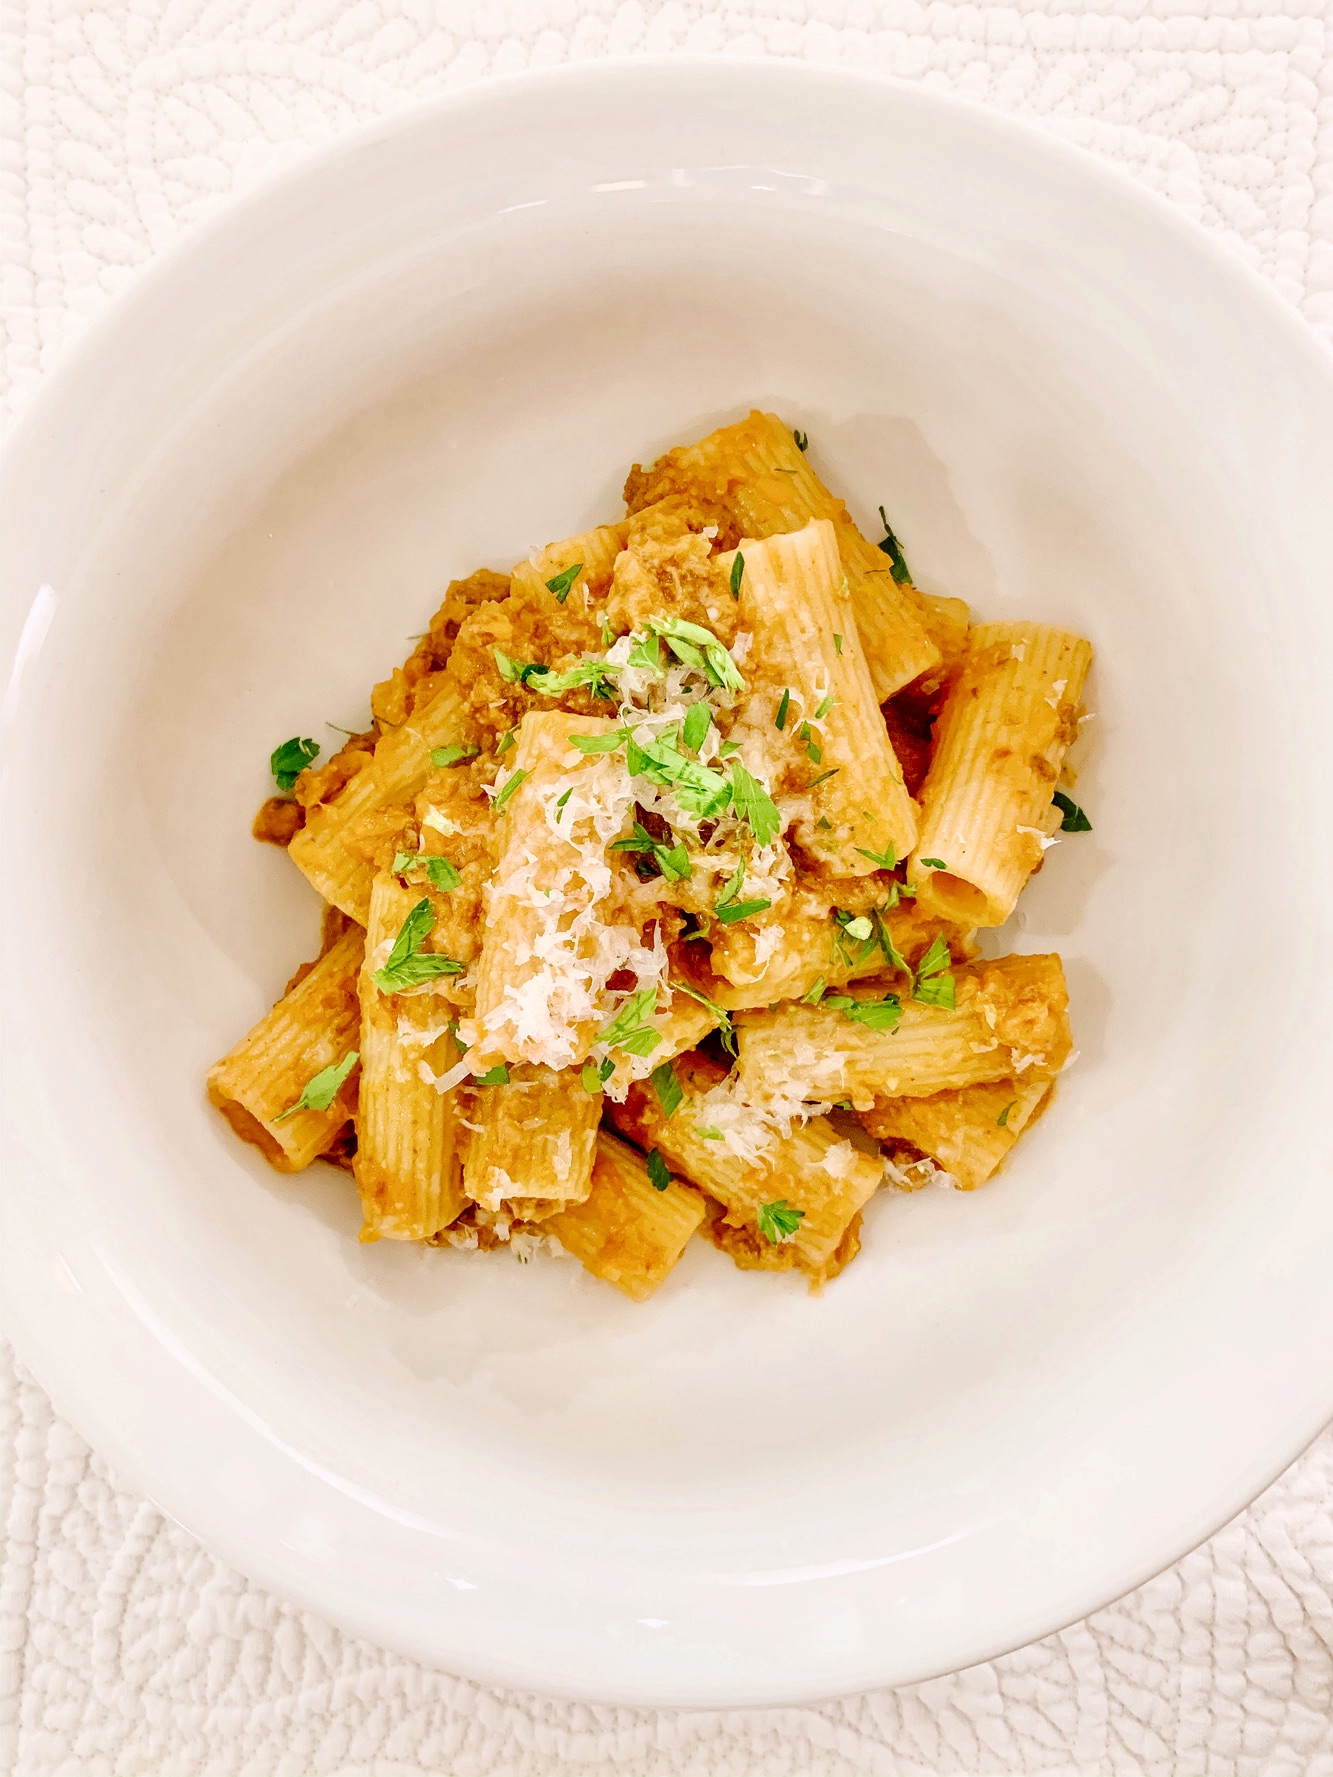 Jeff Wicks Rigatoni Bolognese Recipe - Easiest weeknight dinner that is delicious and quick enough to make. Yummy pasta recipe for weeknight dinners.